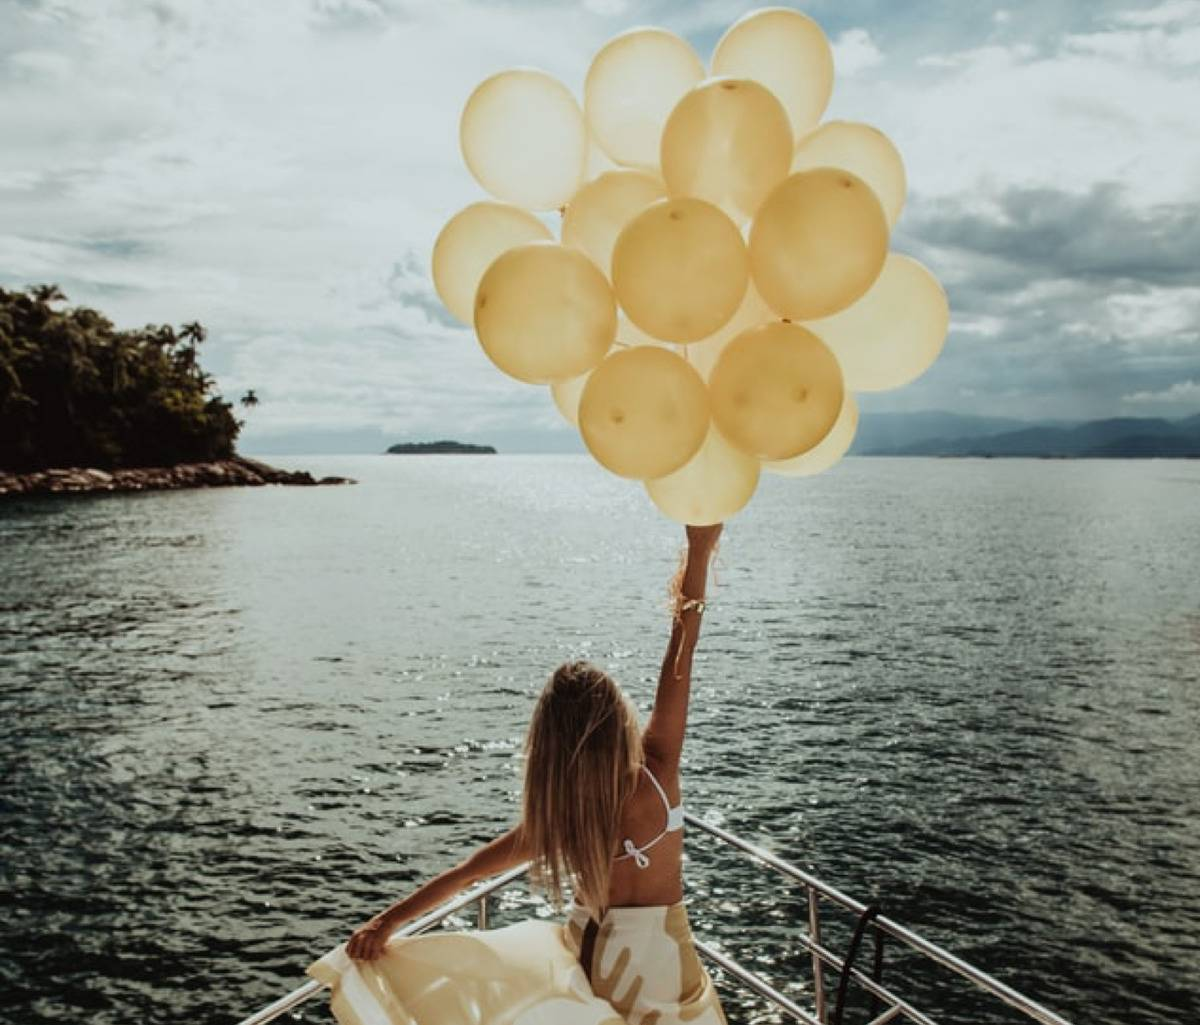 woman on boat with bunch of balloons in her hand